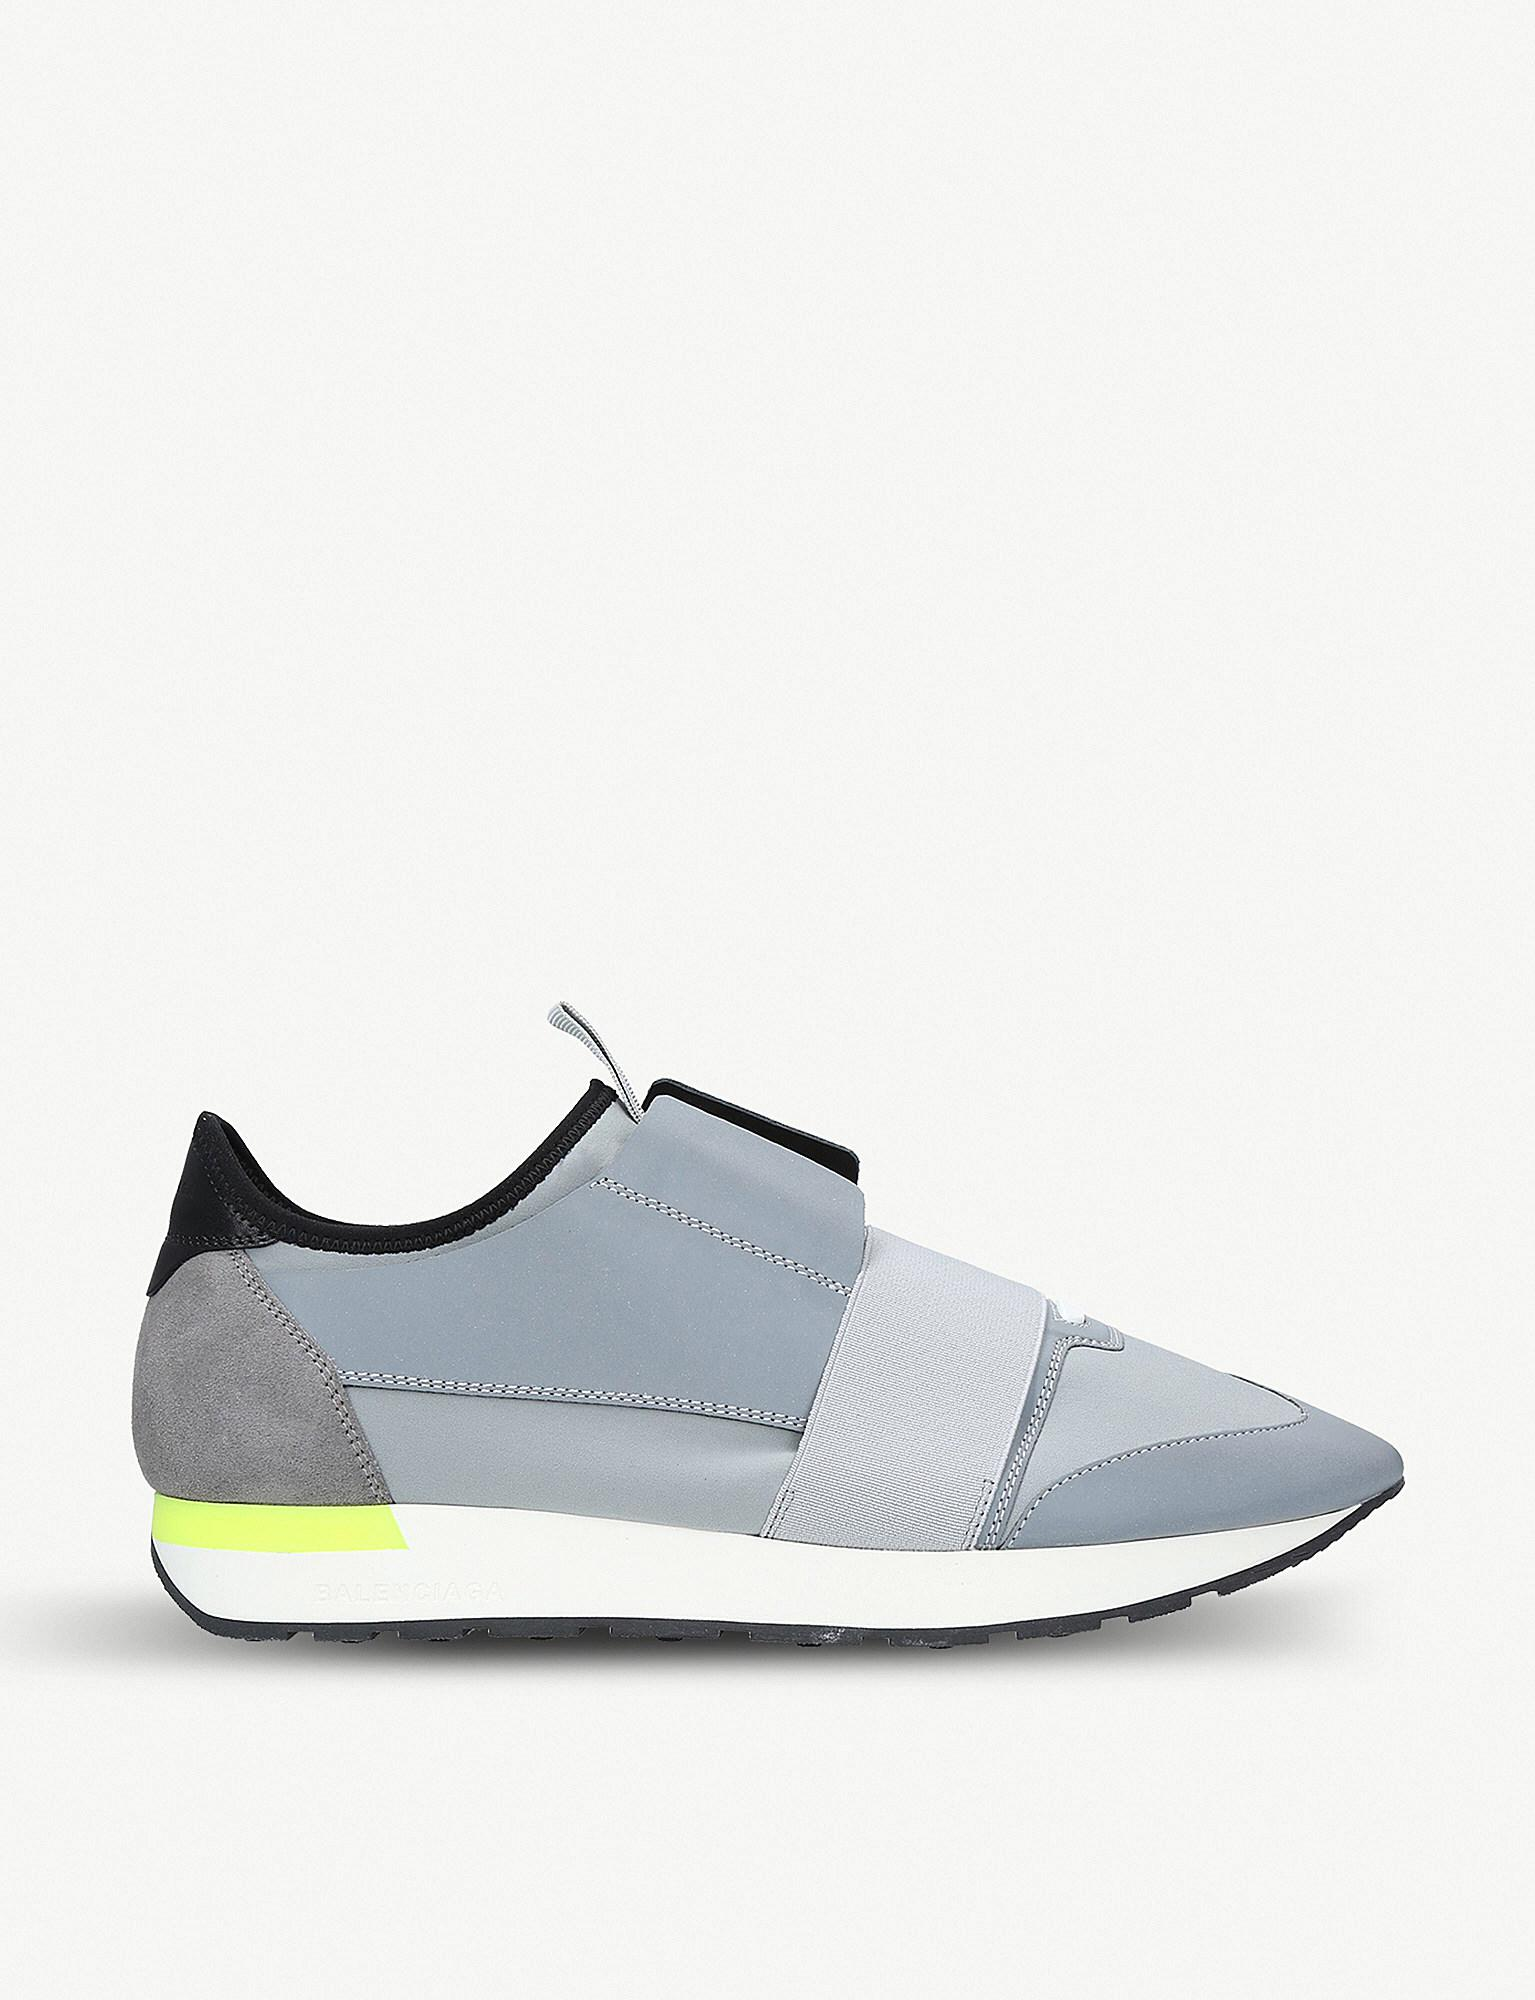 4fe1699b23069 Balenciaga Mens Grey Striped Capsule Race Runners Suede Sneakers in ...